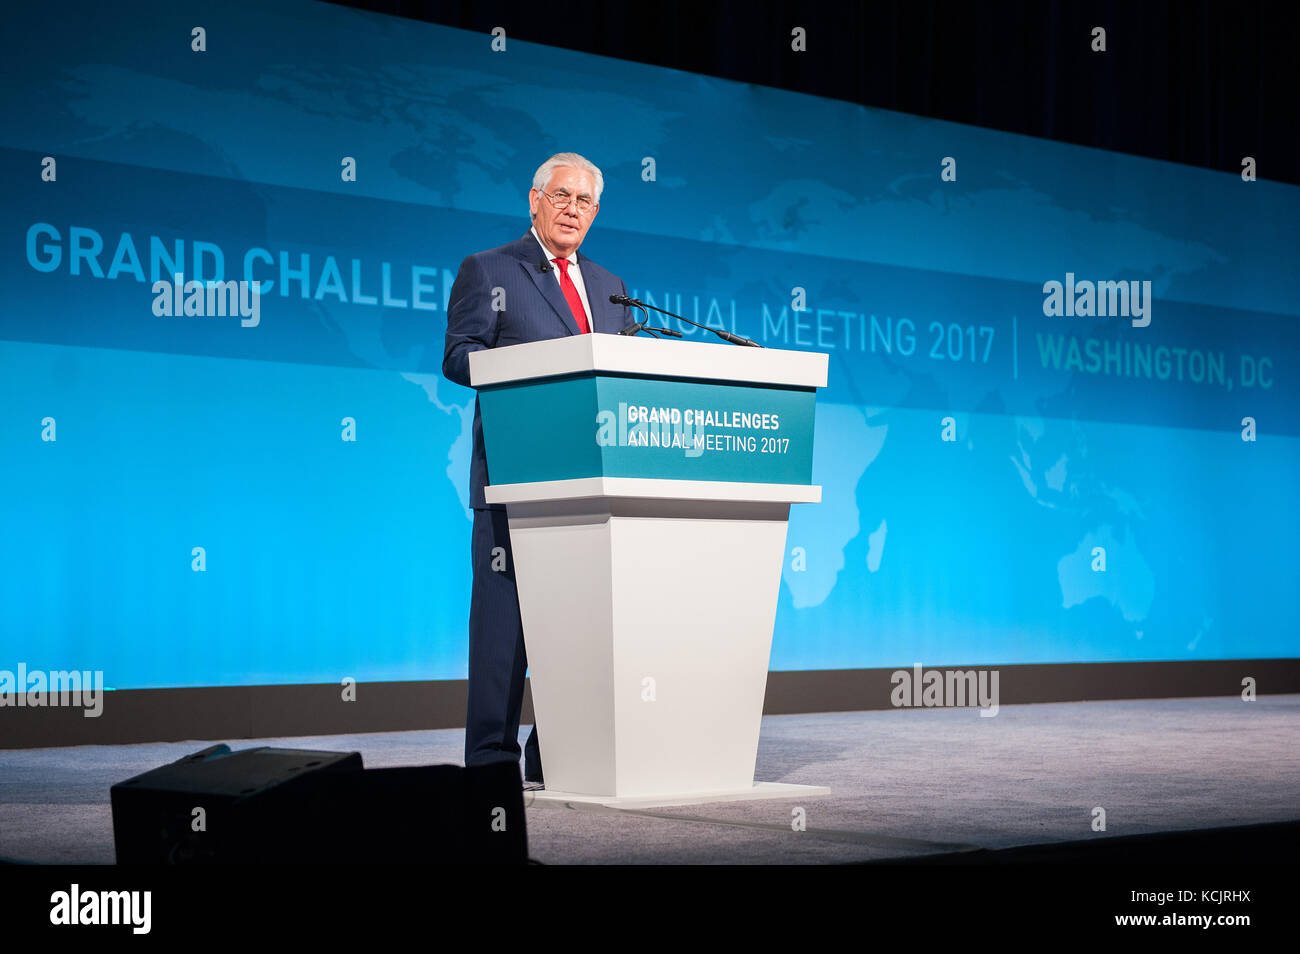 Washington, United States Of America. 04th Oct, 2017. U.S. Secretary of State Rex Tillerson addresses the 13th Annual - Stock Image